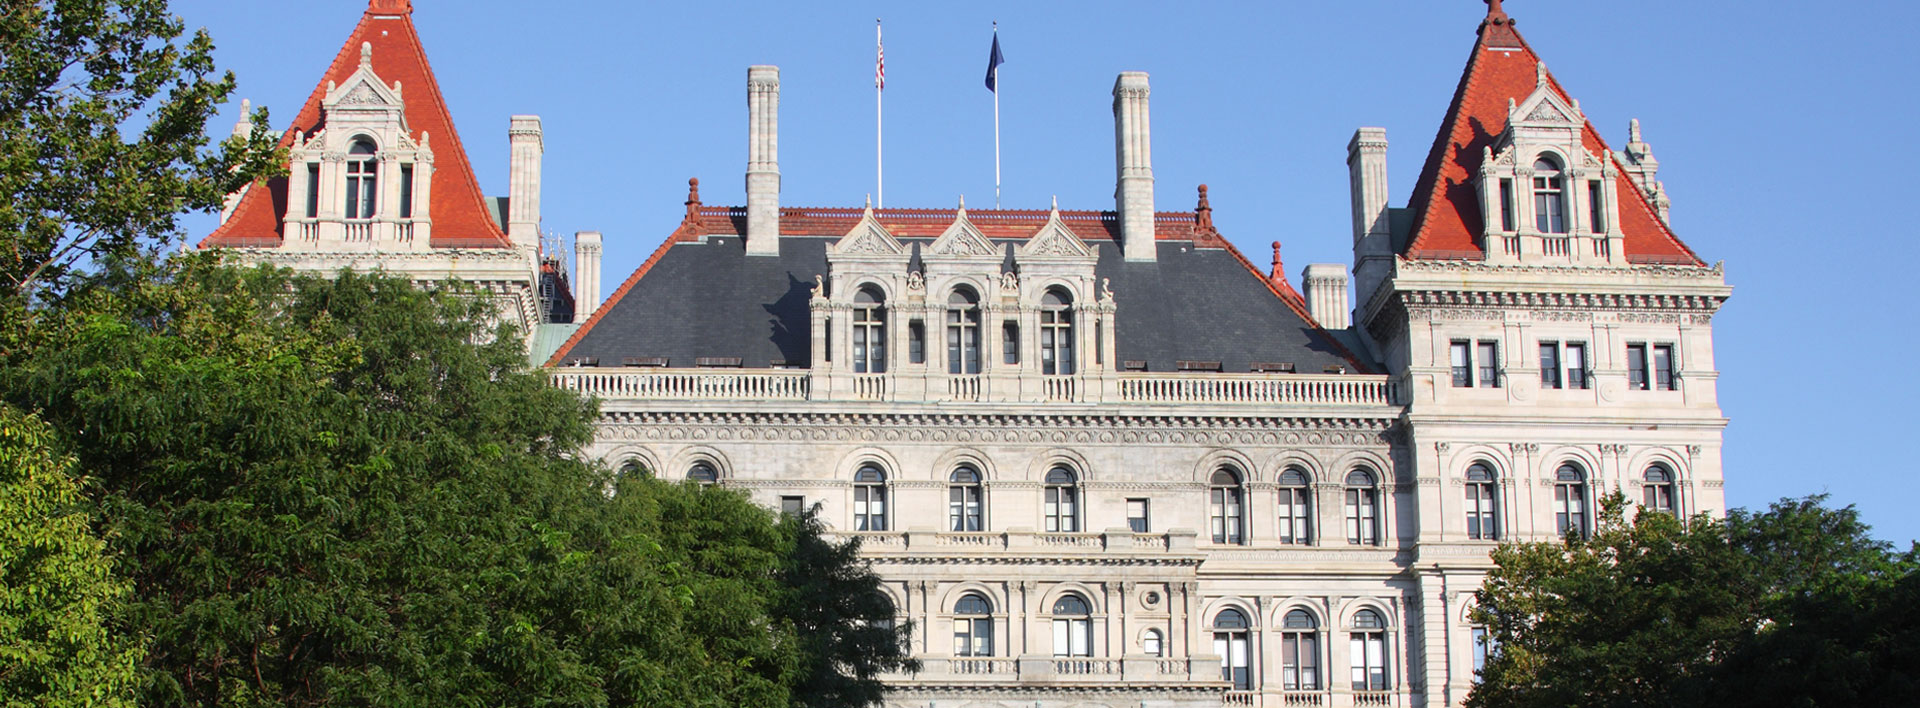 The New York State Capitol, Albany, New York